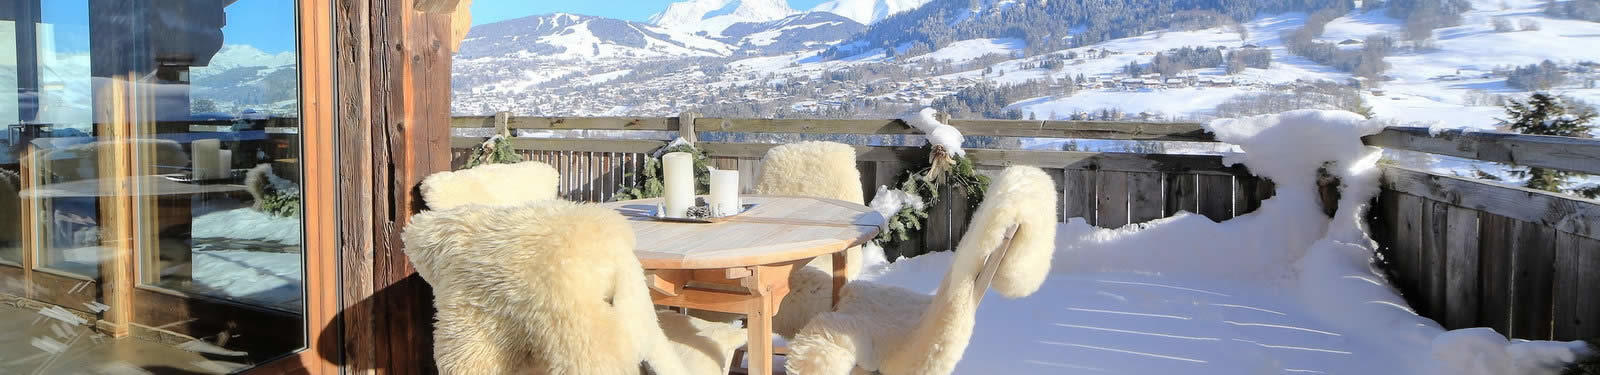 megeve-french-alps-mountain-snow-chalets-mont-blanc